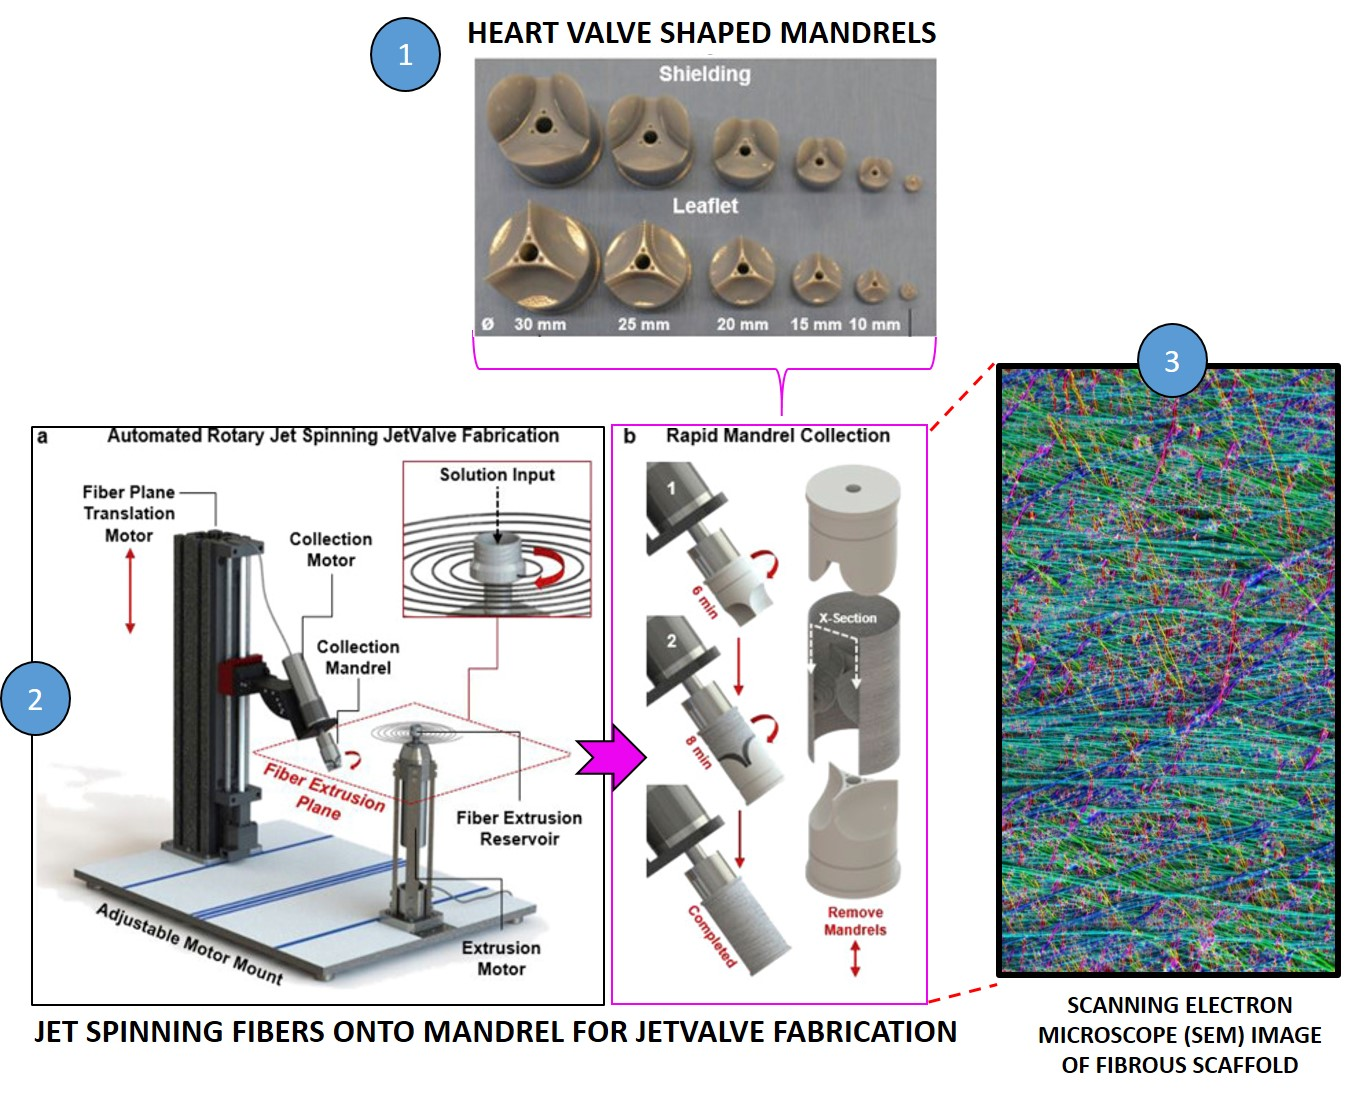 Engineering heart valves for the many